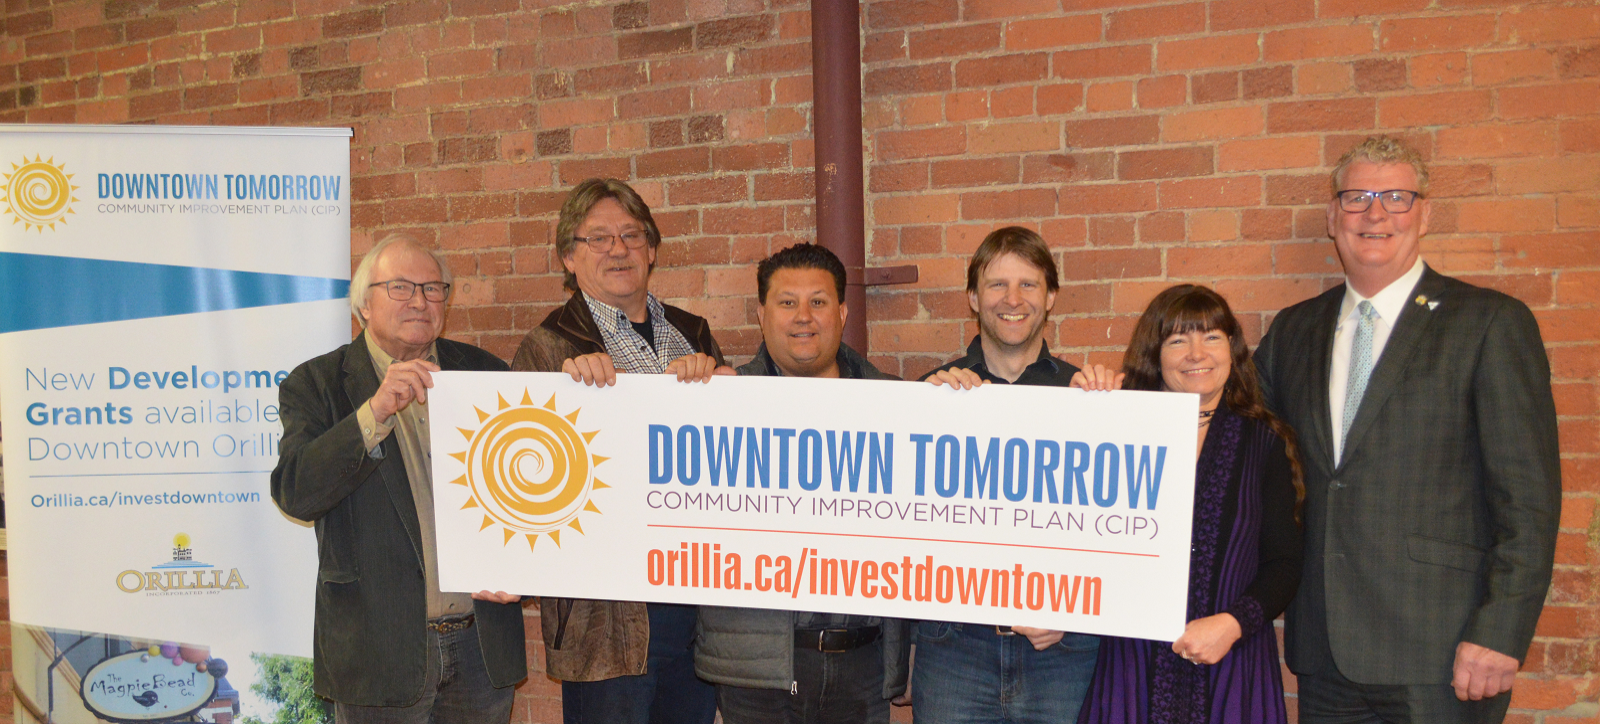 Recipients of the Downtown Tomorrow Grants